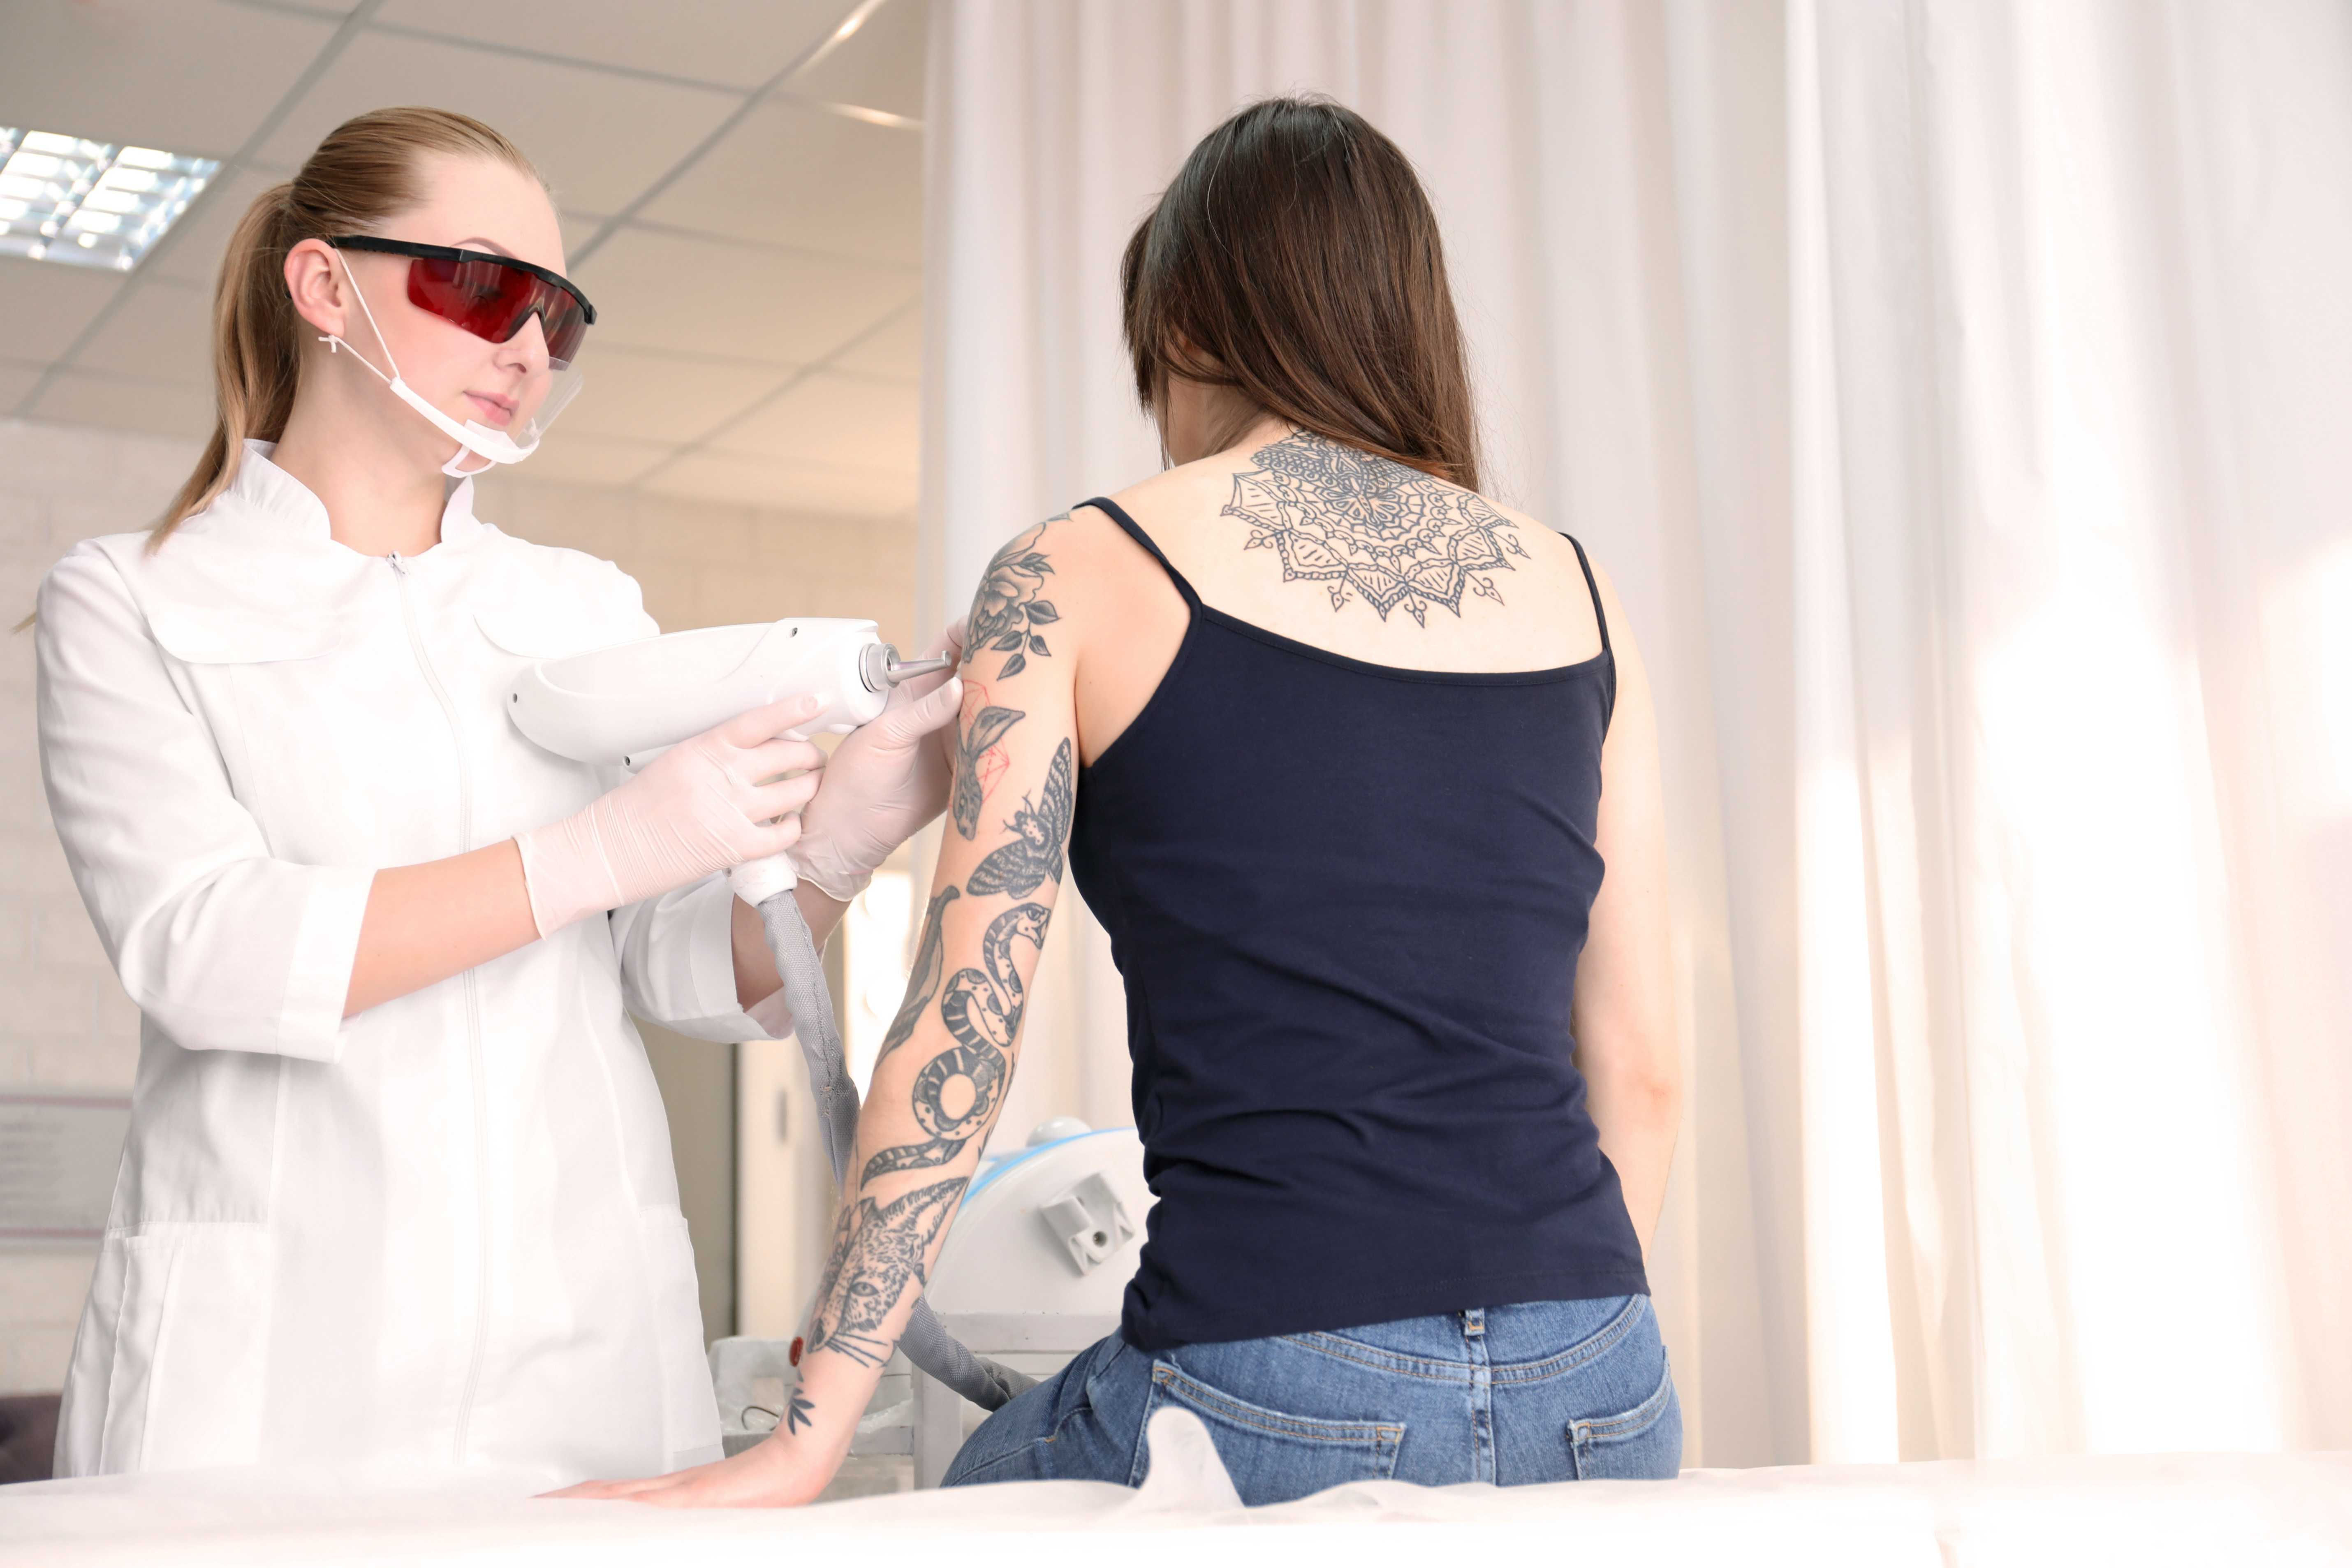 tattoo-removal-laser machine